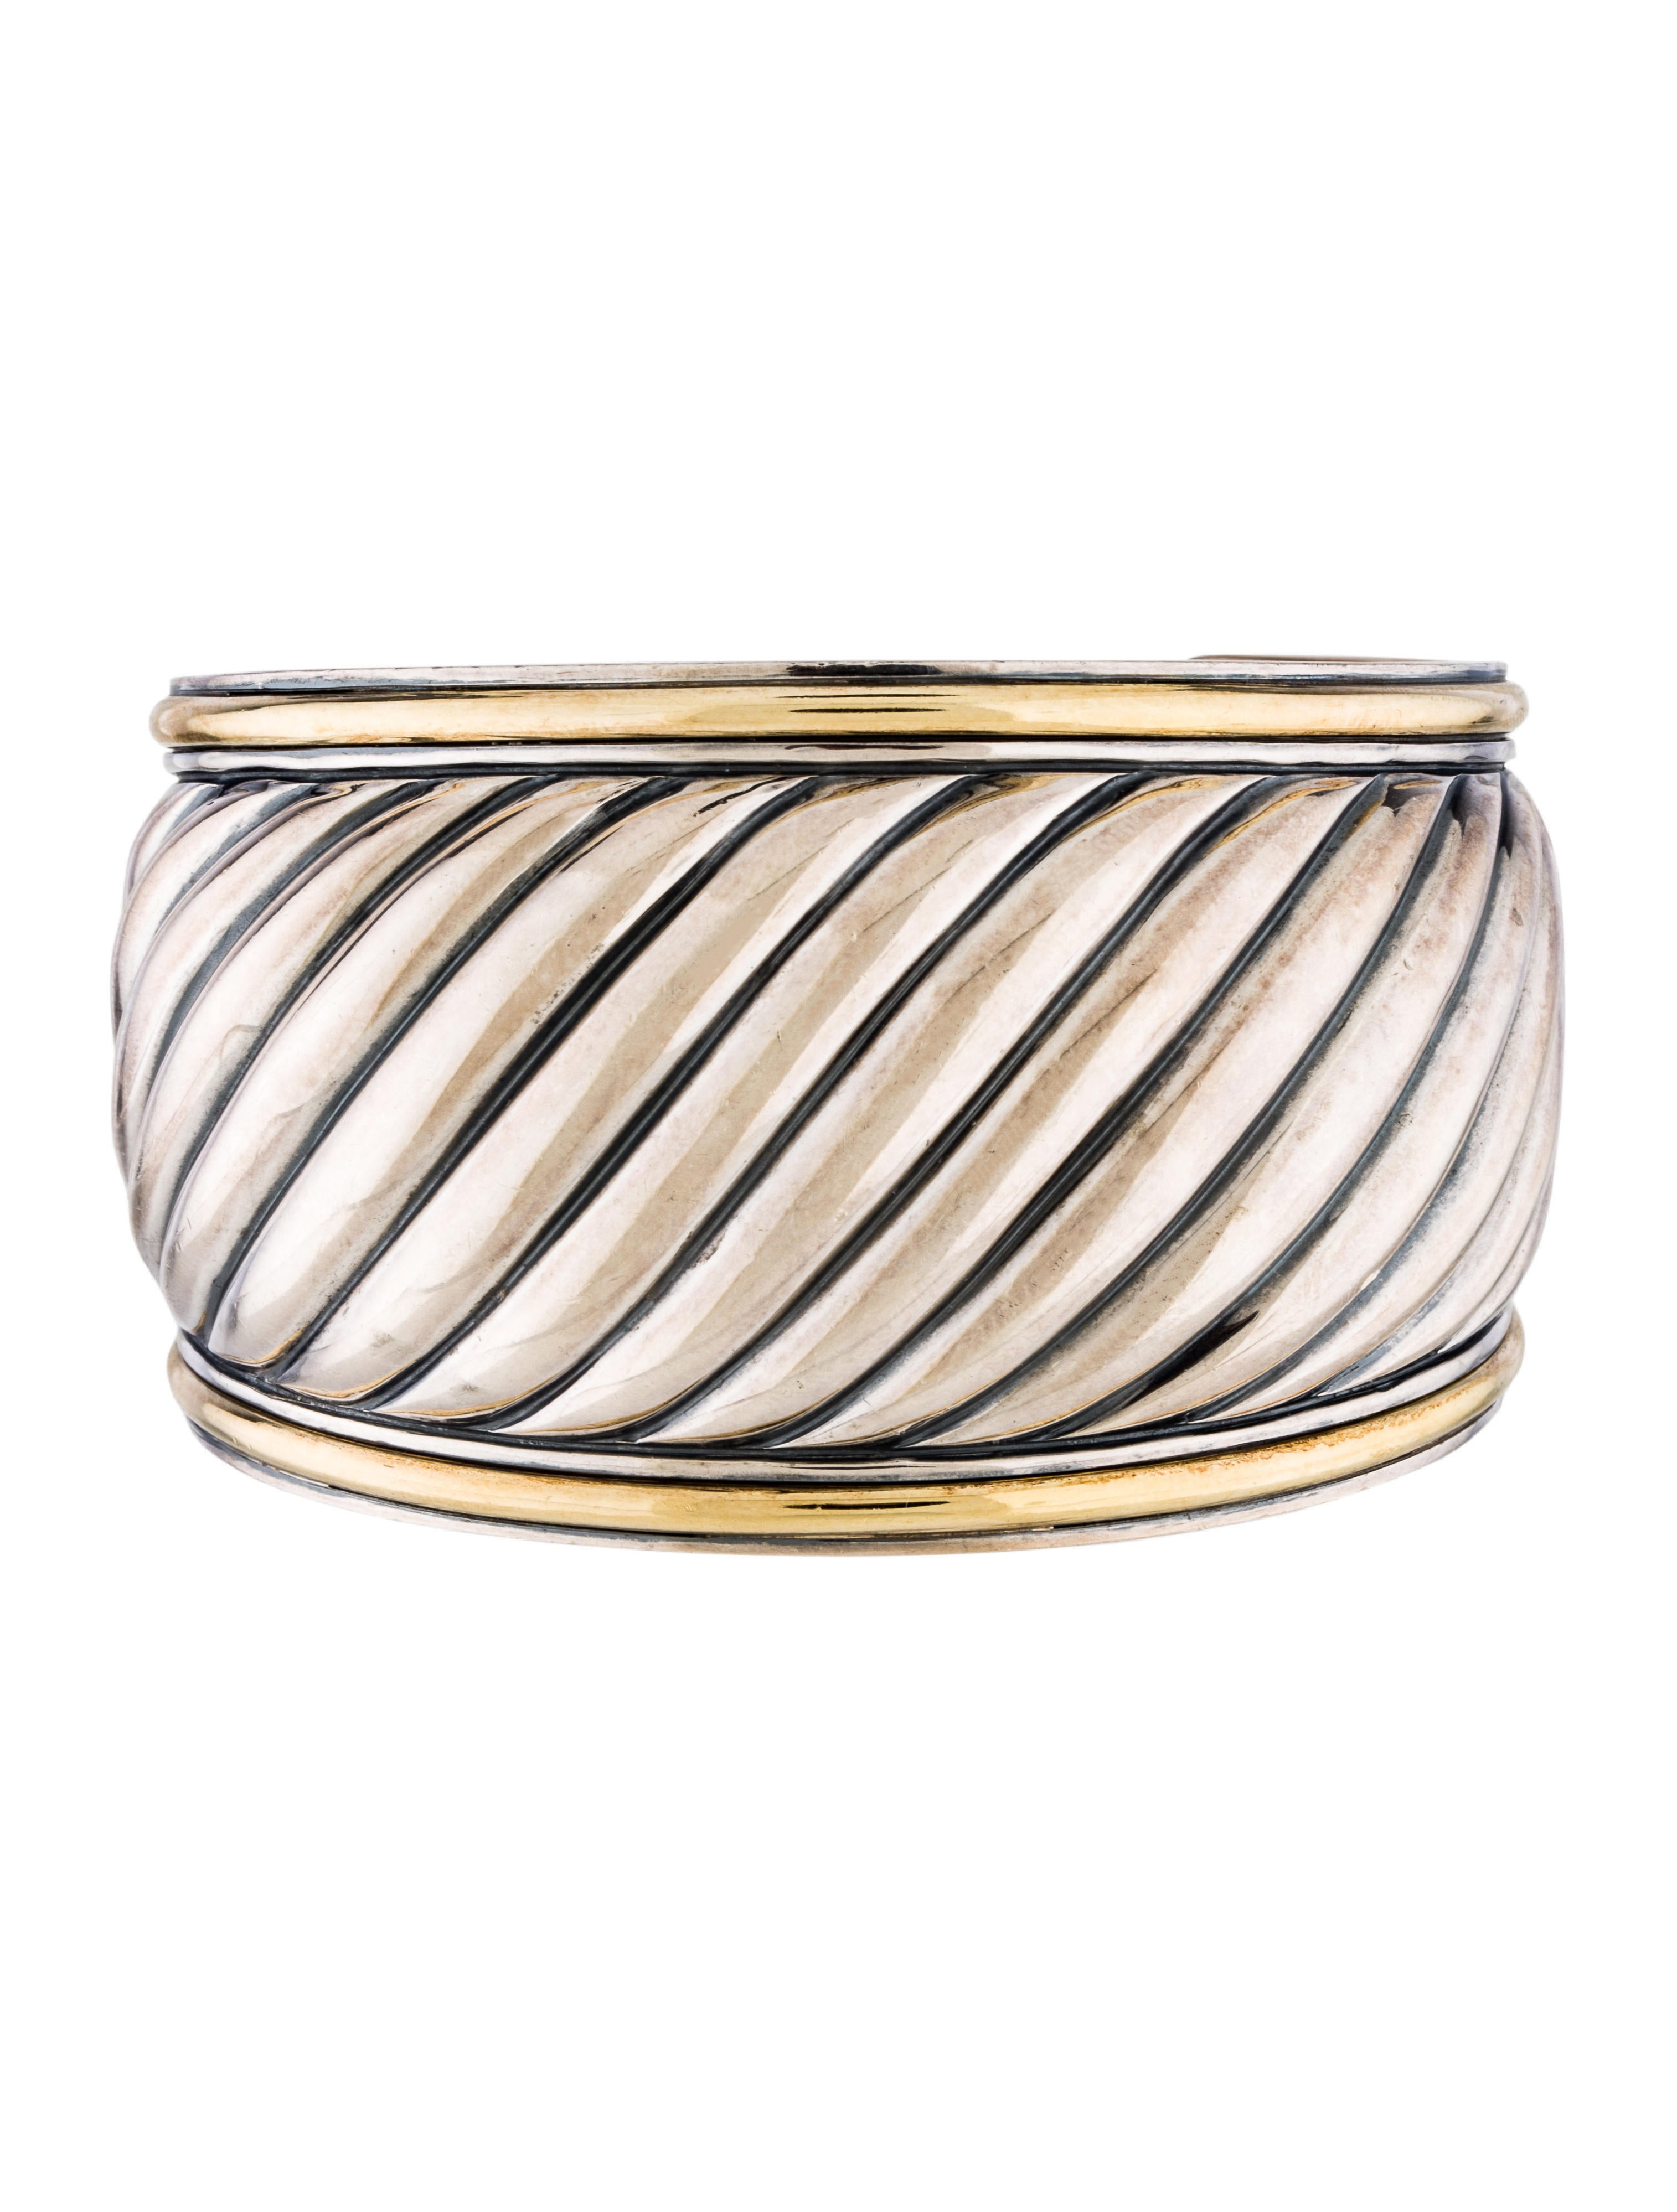 David yurman sculpted cable cuff bracelet bracelets for David yurman inspired bracelet cable